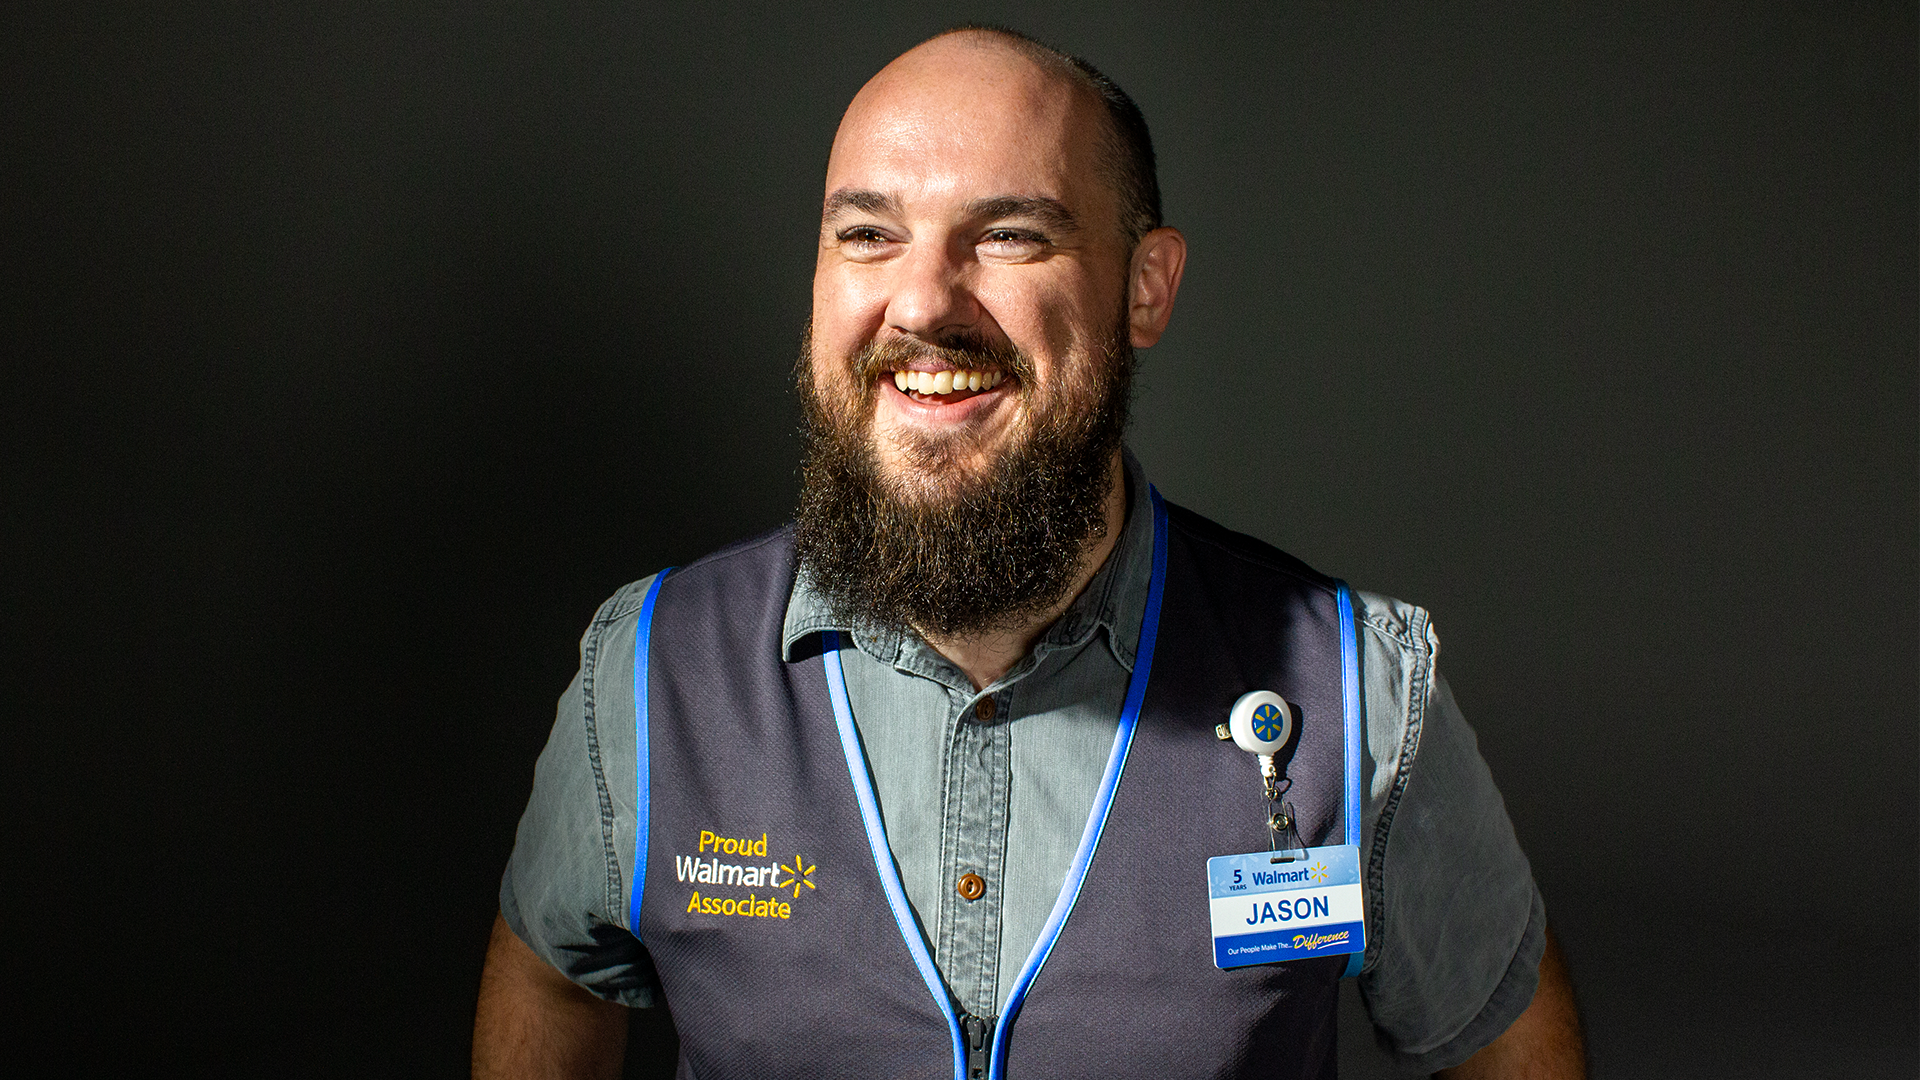 Associate wearing new blue vest showing close up